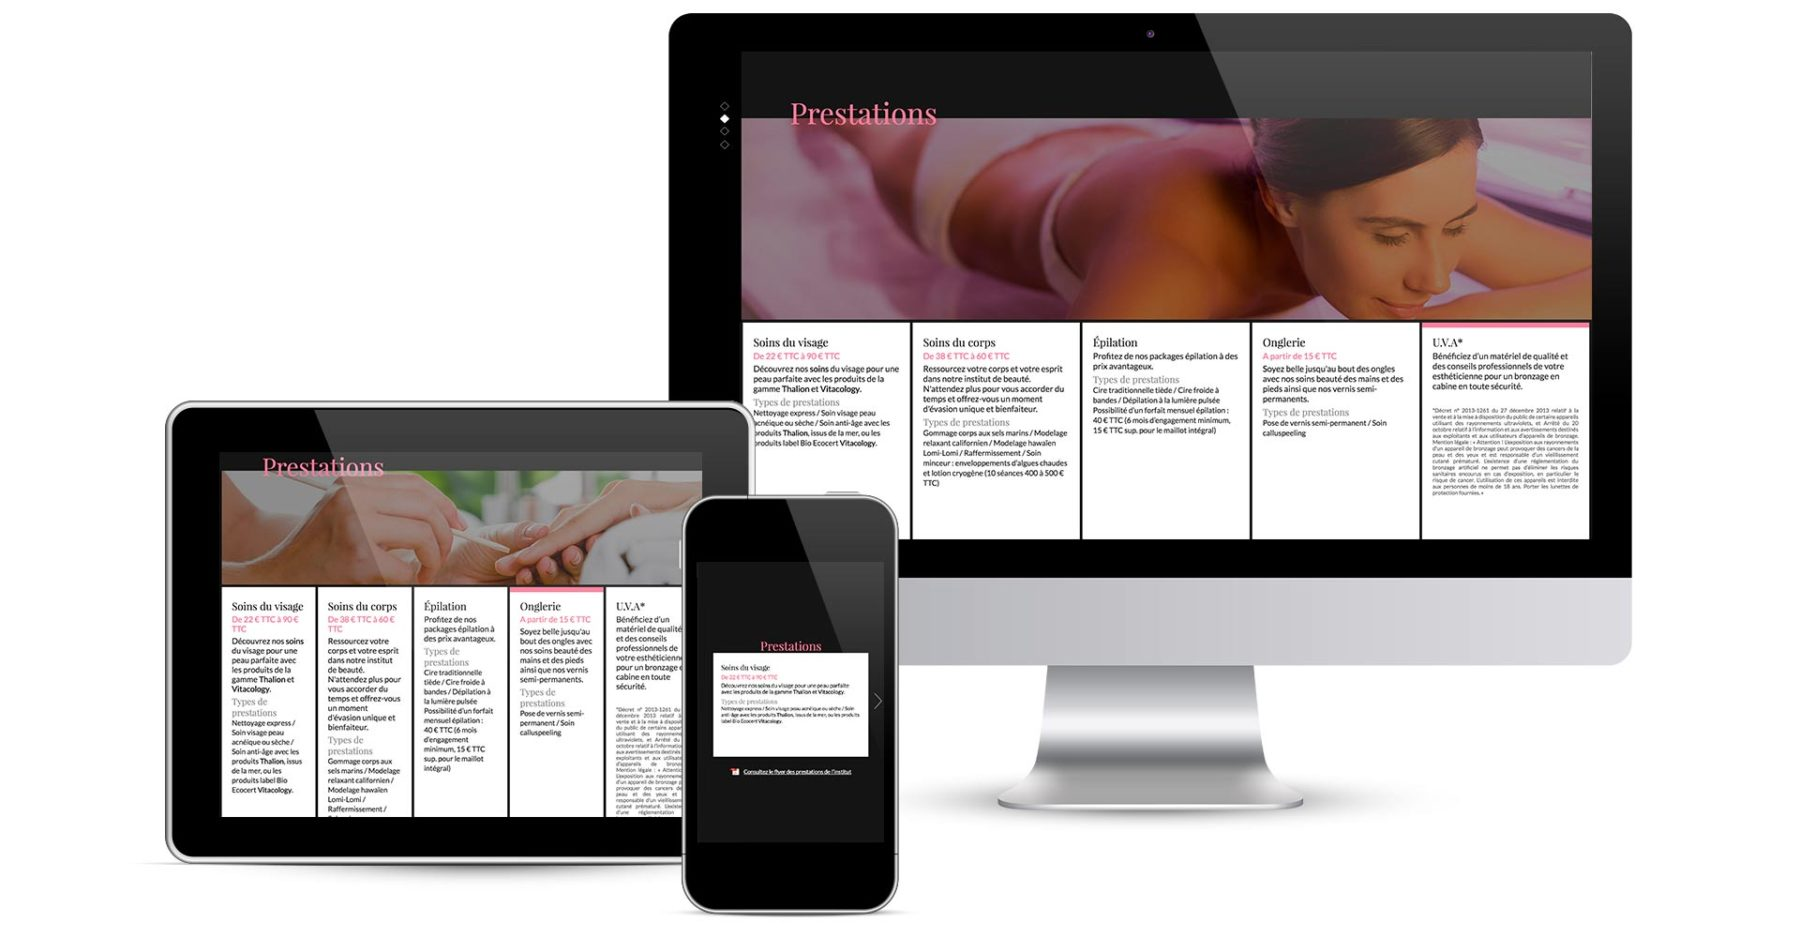 Picture showing the treatments page on desktop, tablet and mobile